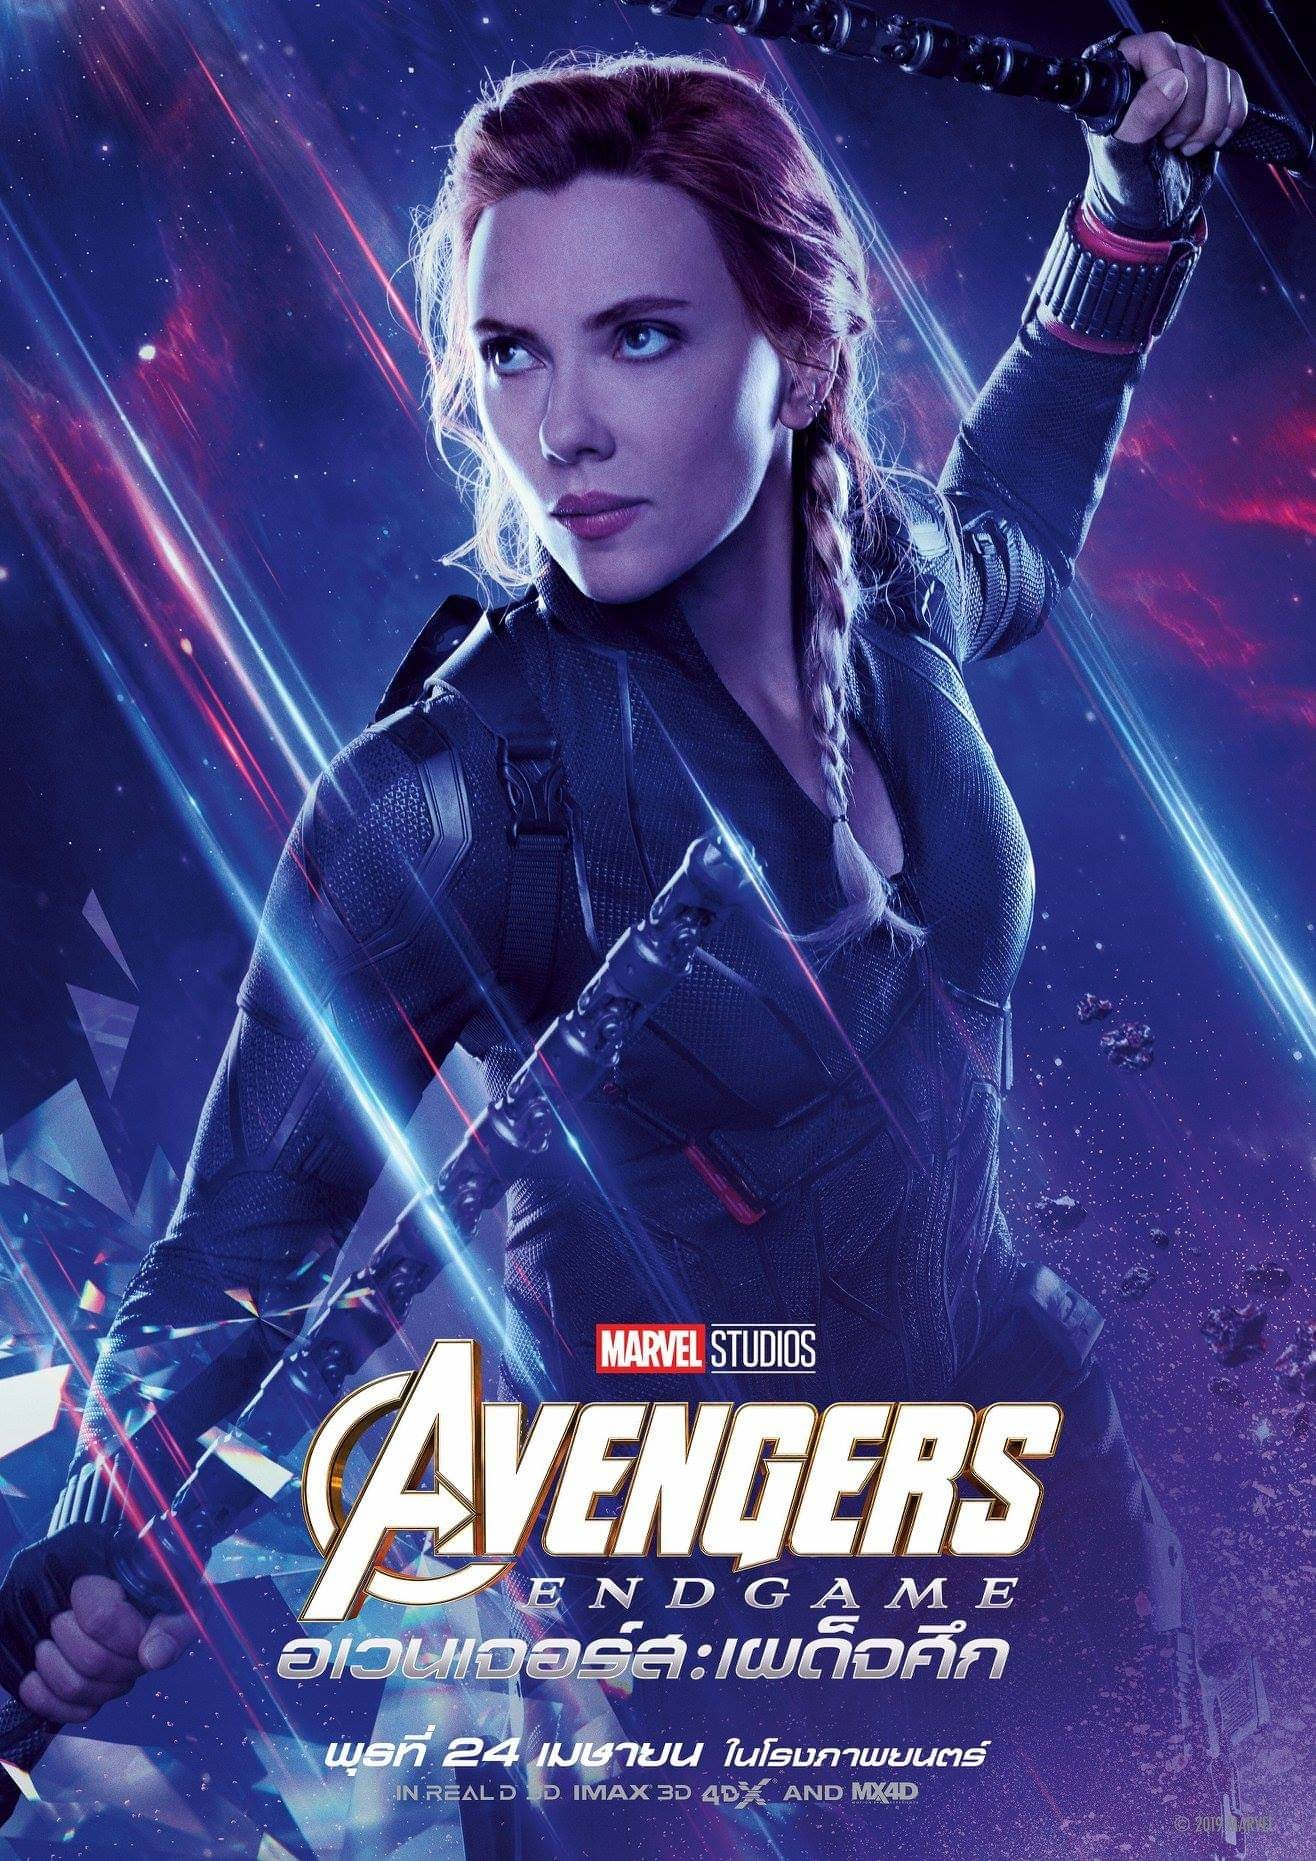 Endgame international character poster for Black Widow